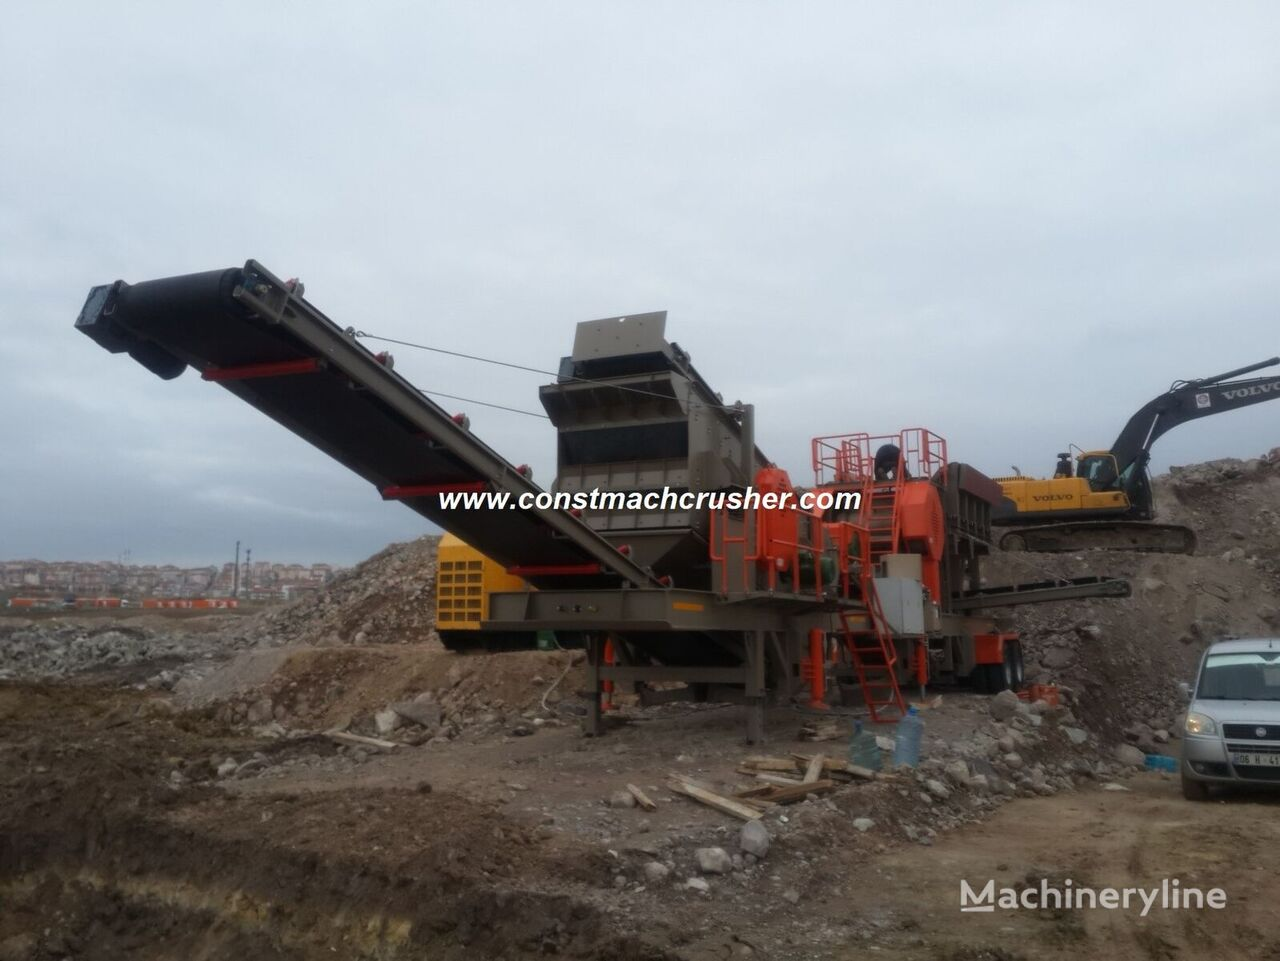 CONSTMACH MOBILE JAW CRUSHER, DELIVERY FROM STOCK planta trituradora móvil nueva